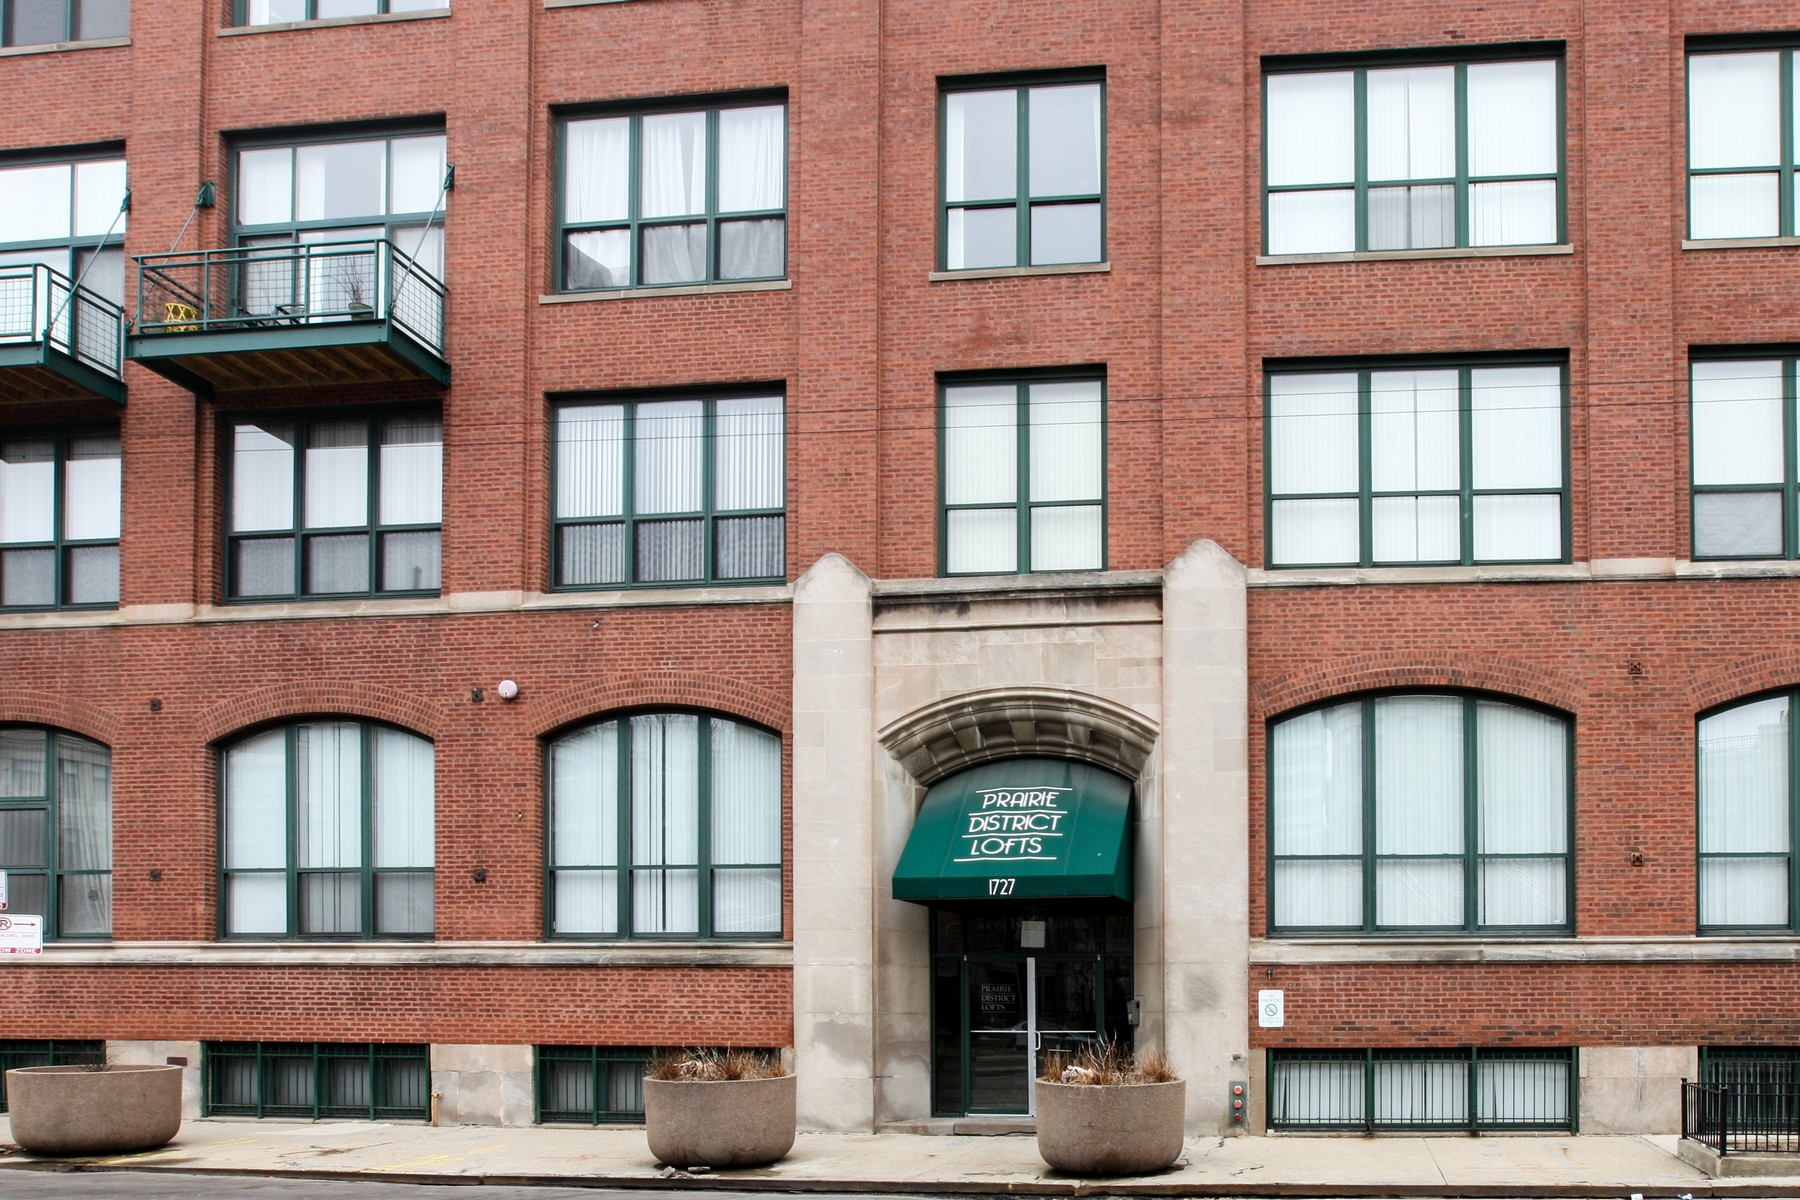 Condominium for Sale at Great South Loop Condo 1727 S Indiana Avenue Unit 221 Near South Side, Chicago, Illinois, 60616 United States